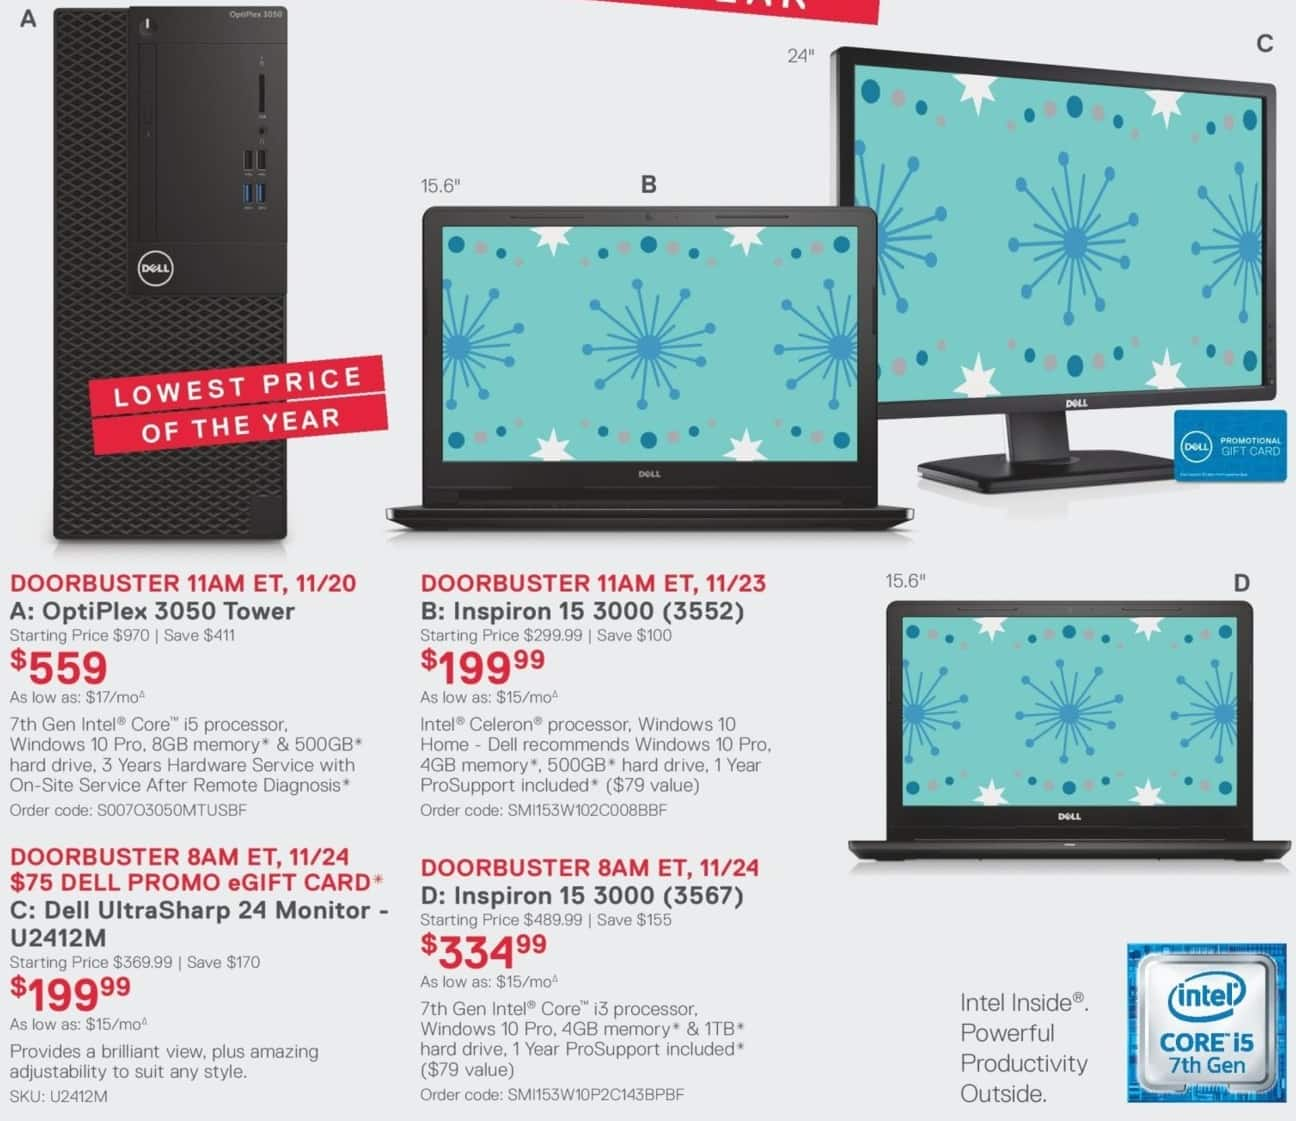 Dell Small Business Black Friday: OptiPlex 3050 Tower: Intel Core i5 (7th Gen), 8GB RAM, 500GB HDD, Win 10 Pro for $559.00